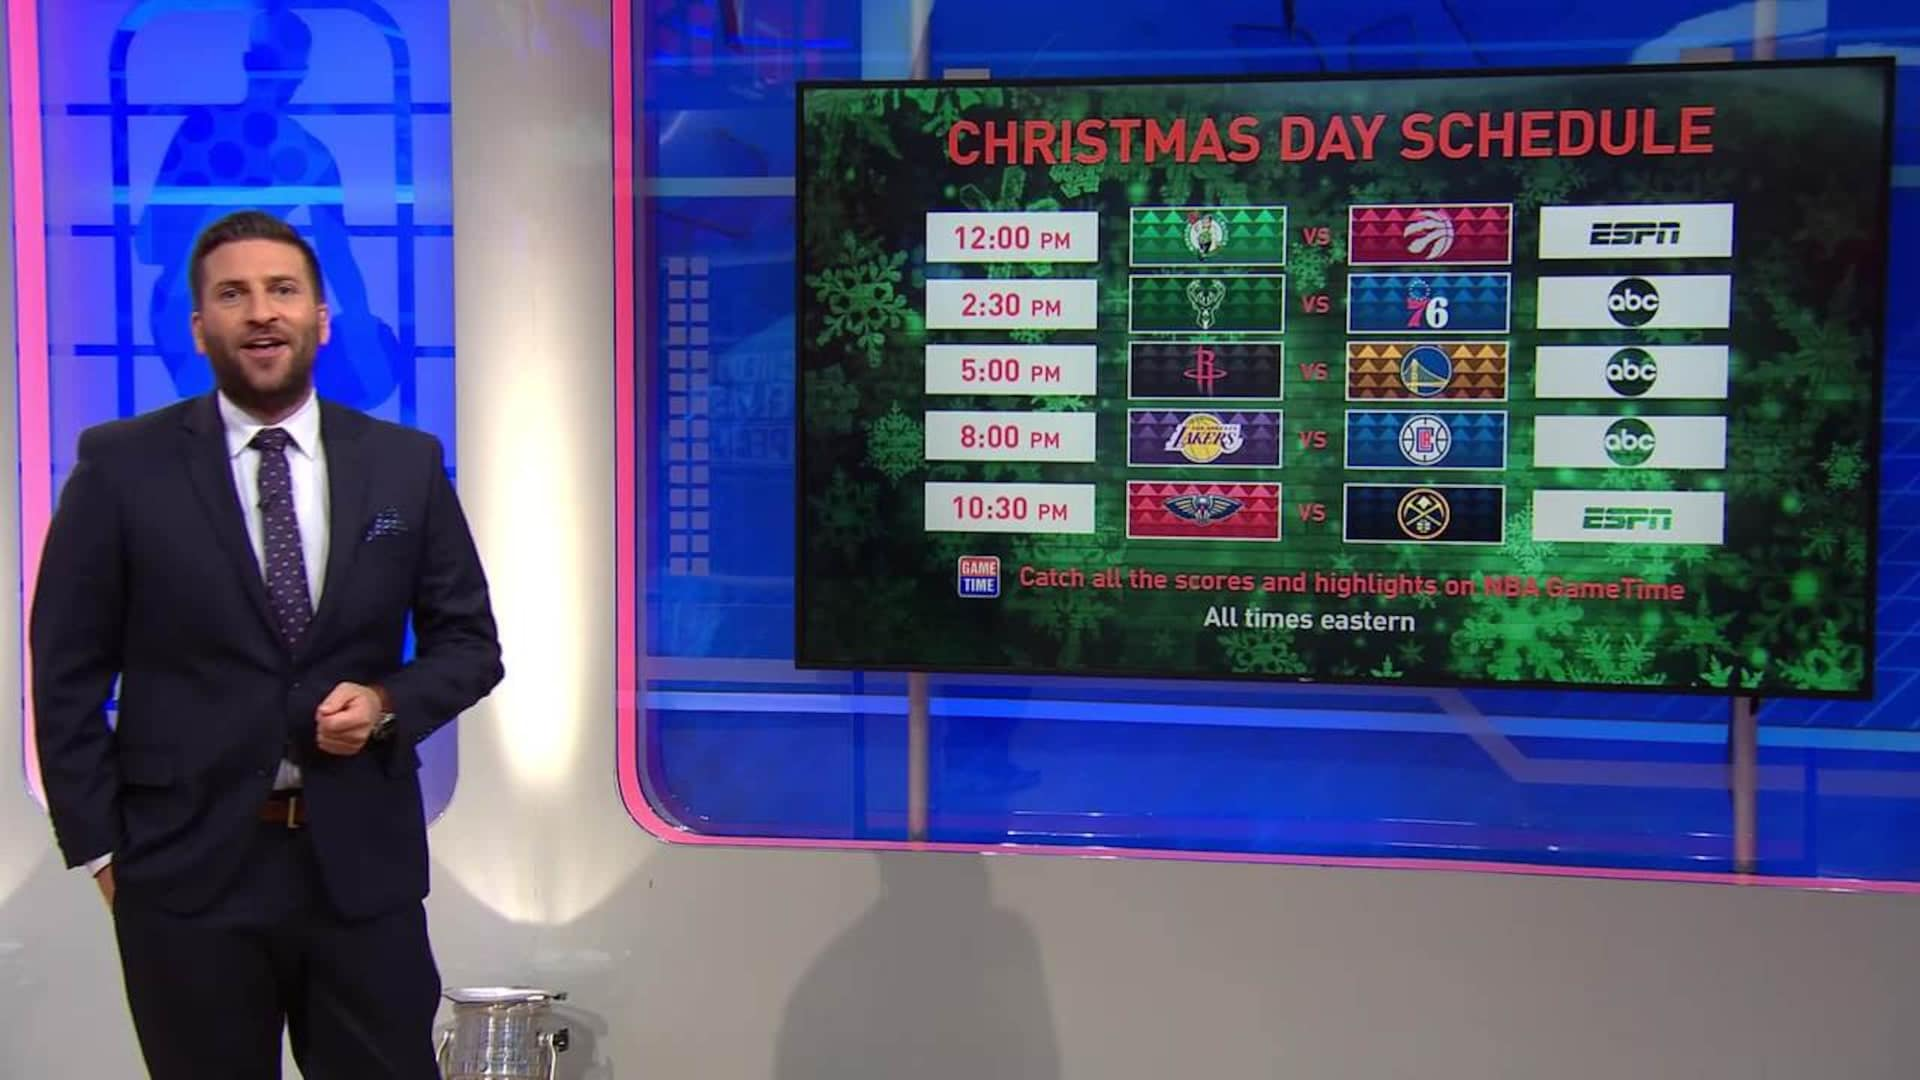 Nba Schedule Christmas Day 2020 NBA unveils 2019 20 game and national television schedules | NBA.com